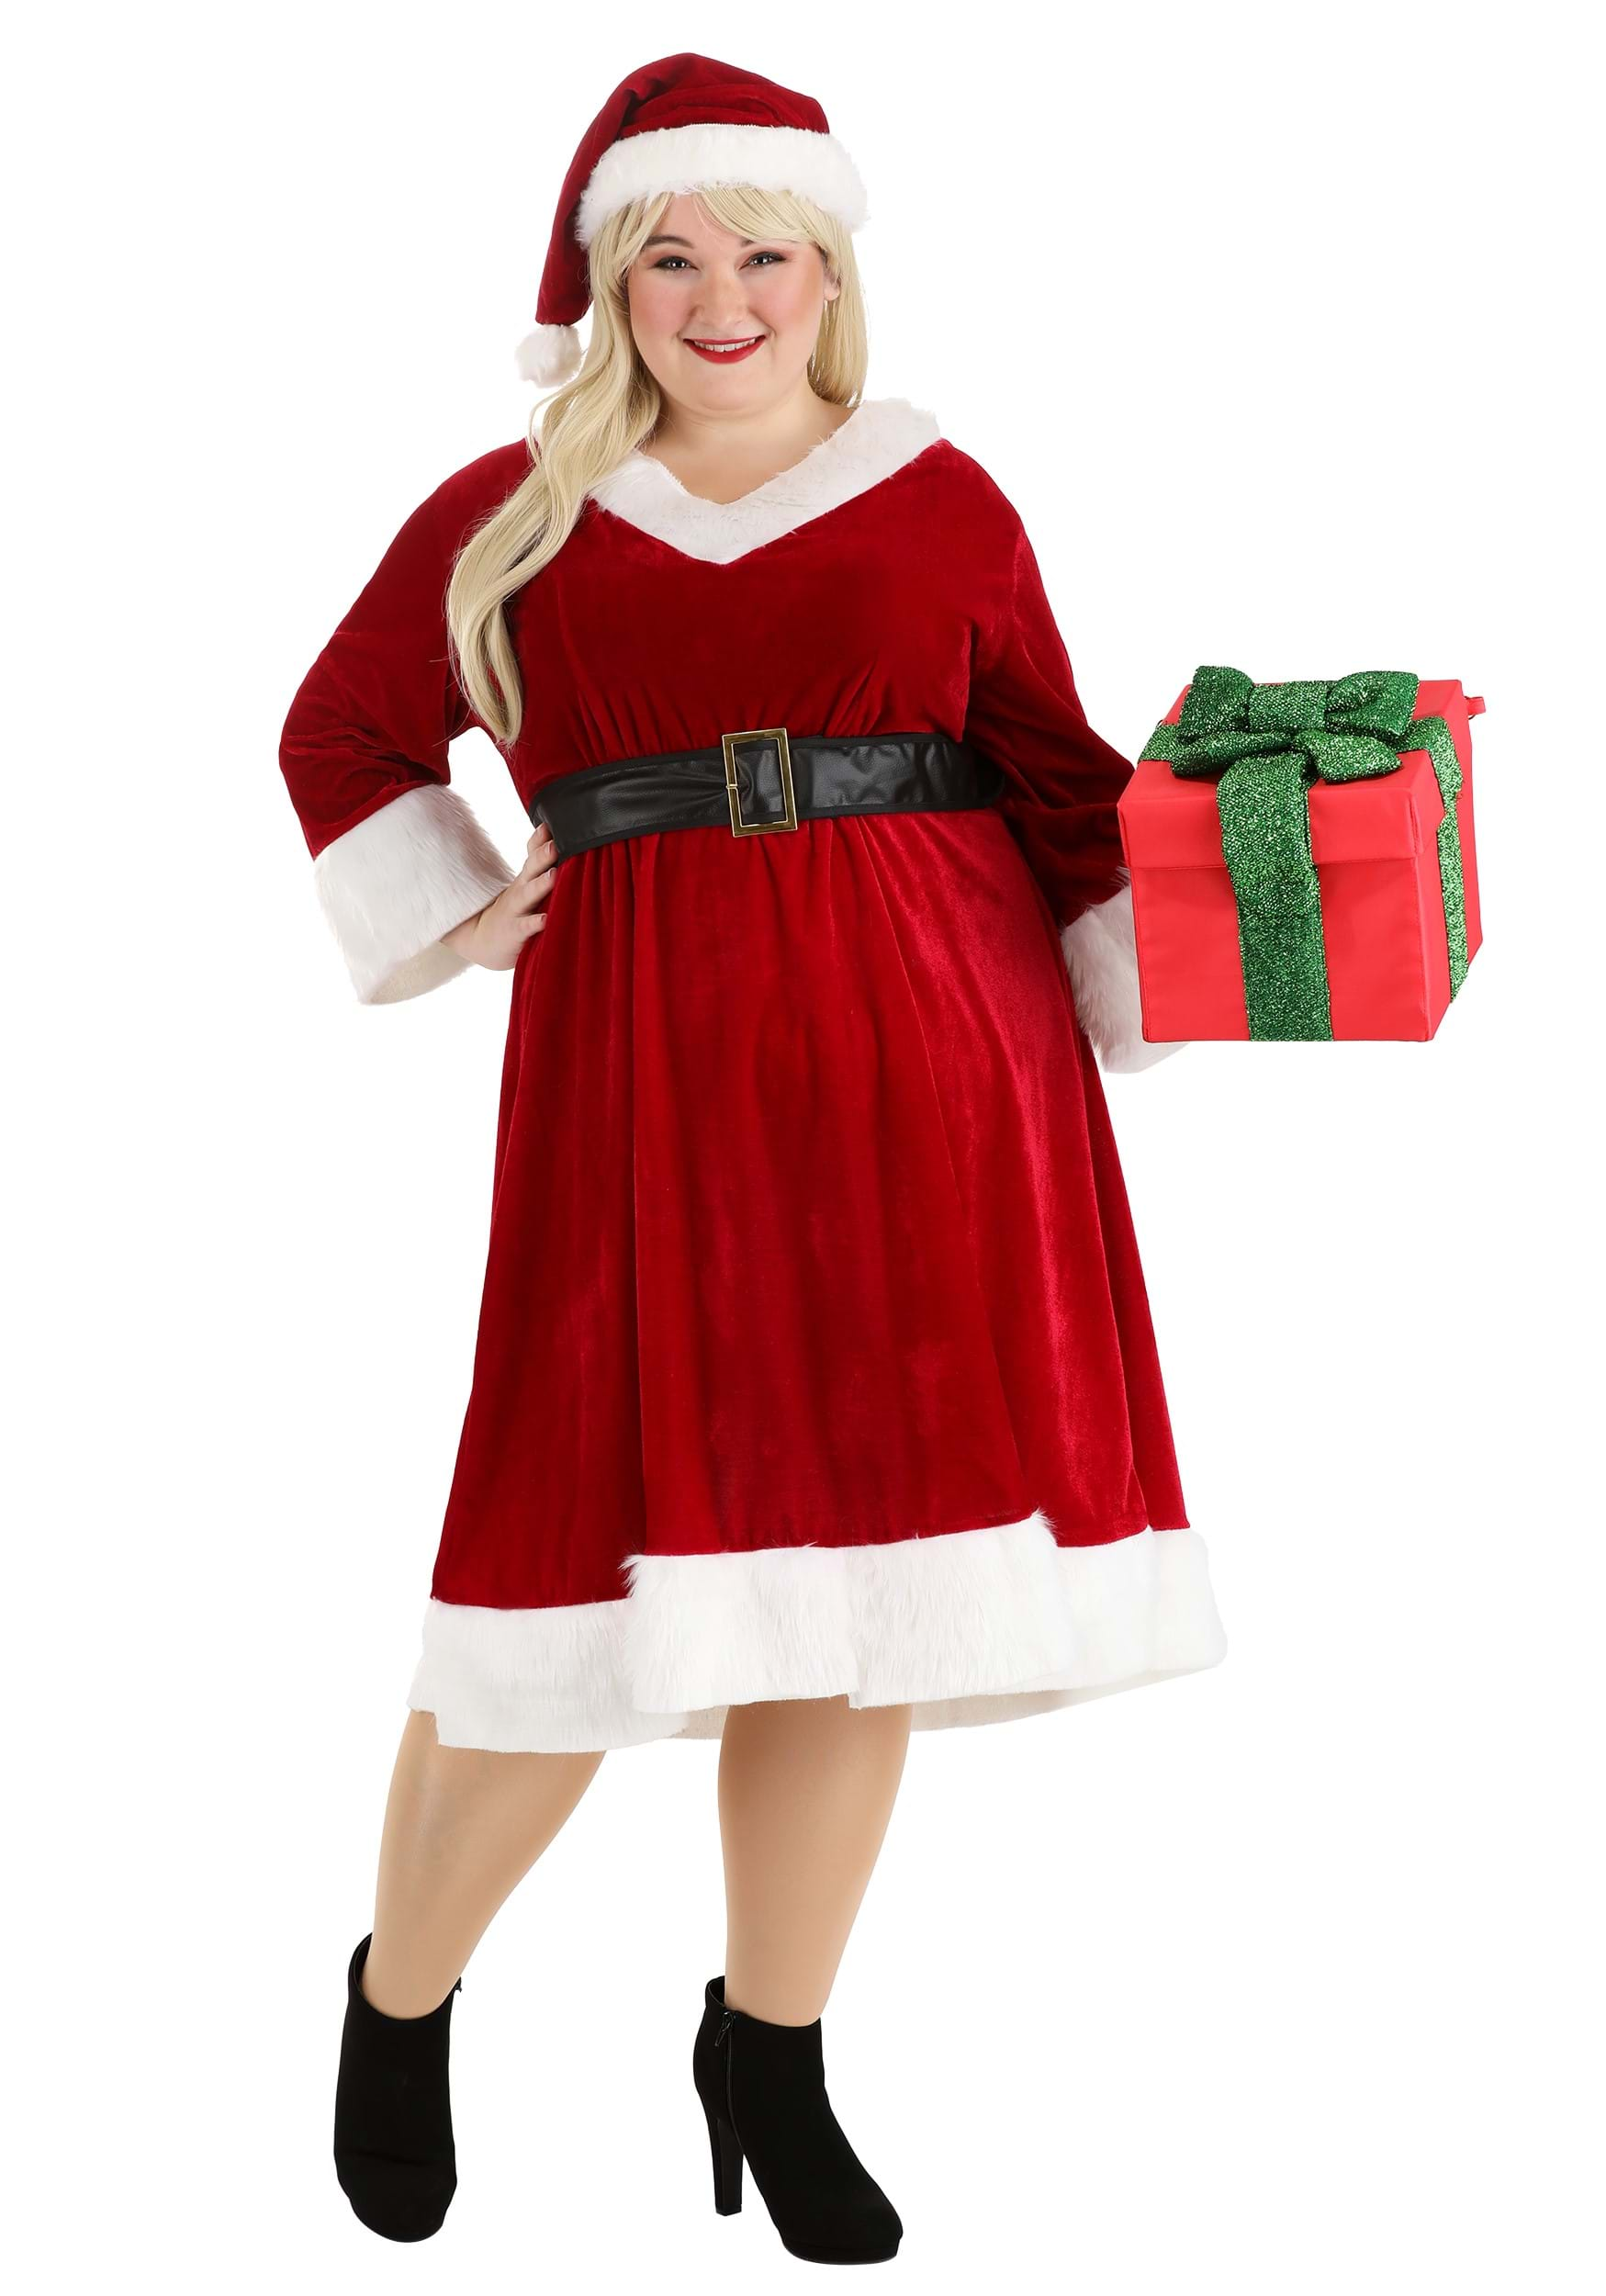 Christmas gown ideas 70s halloween - Plus Size Santa Claus Sweetie Costume